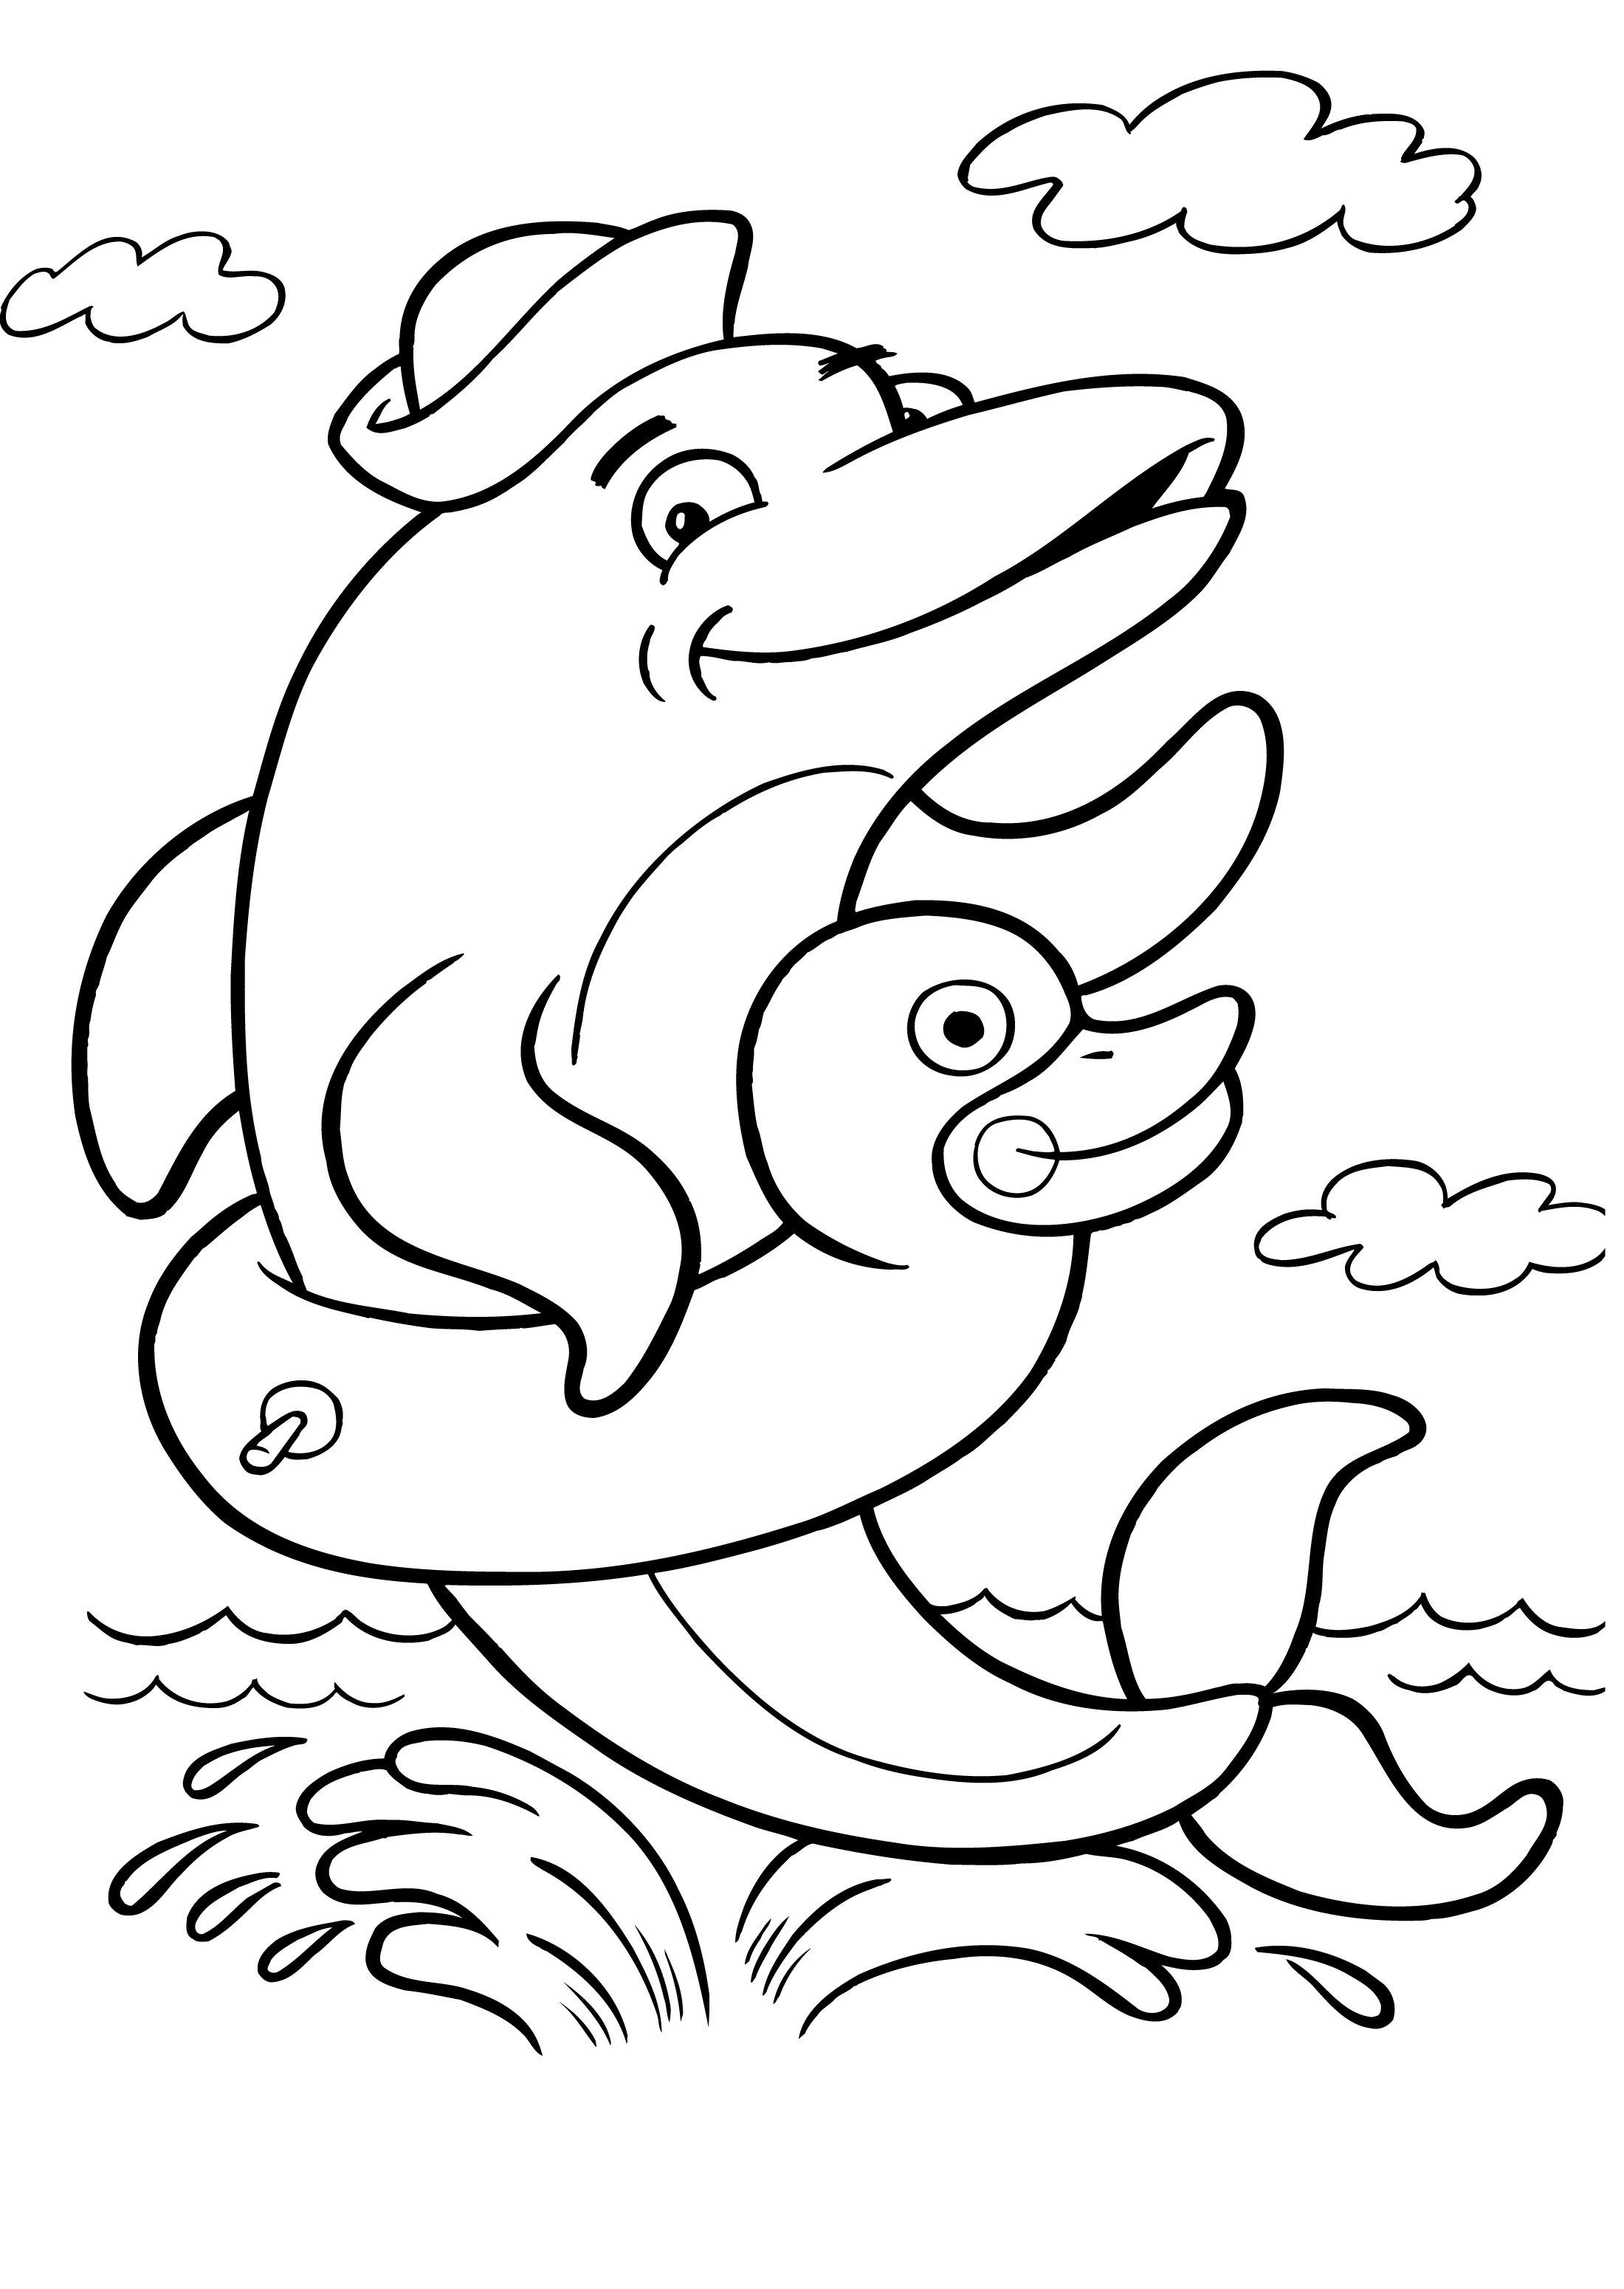 free dolphin coloring pages free printable dolphin coloring pages for kids coloring pages dolphin free